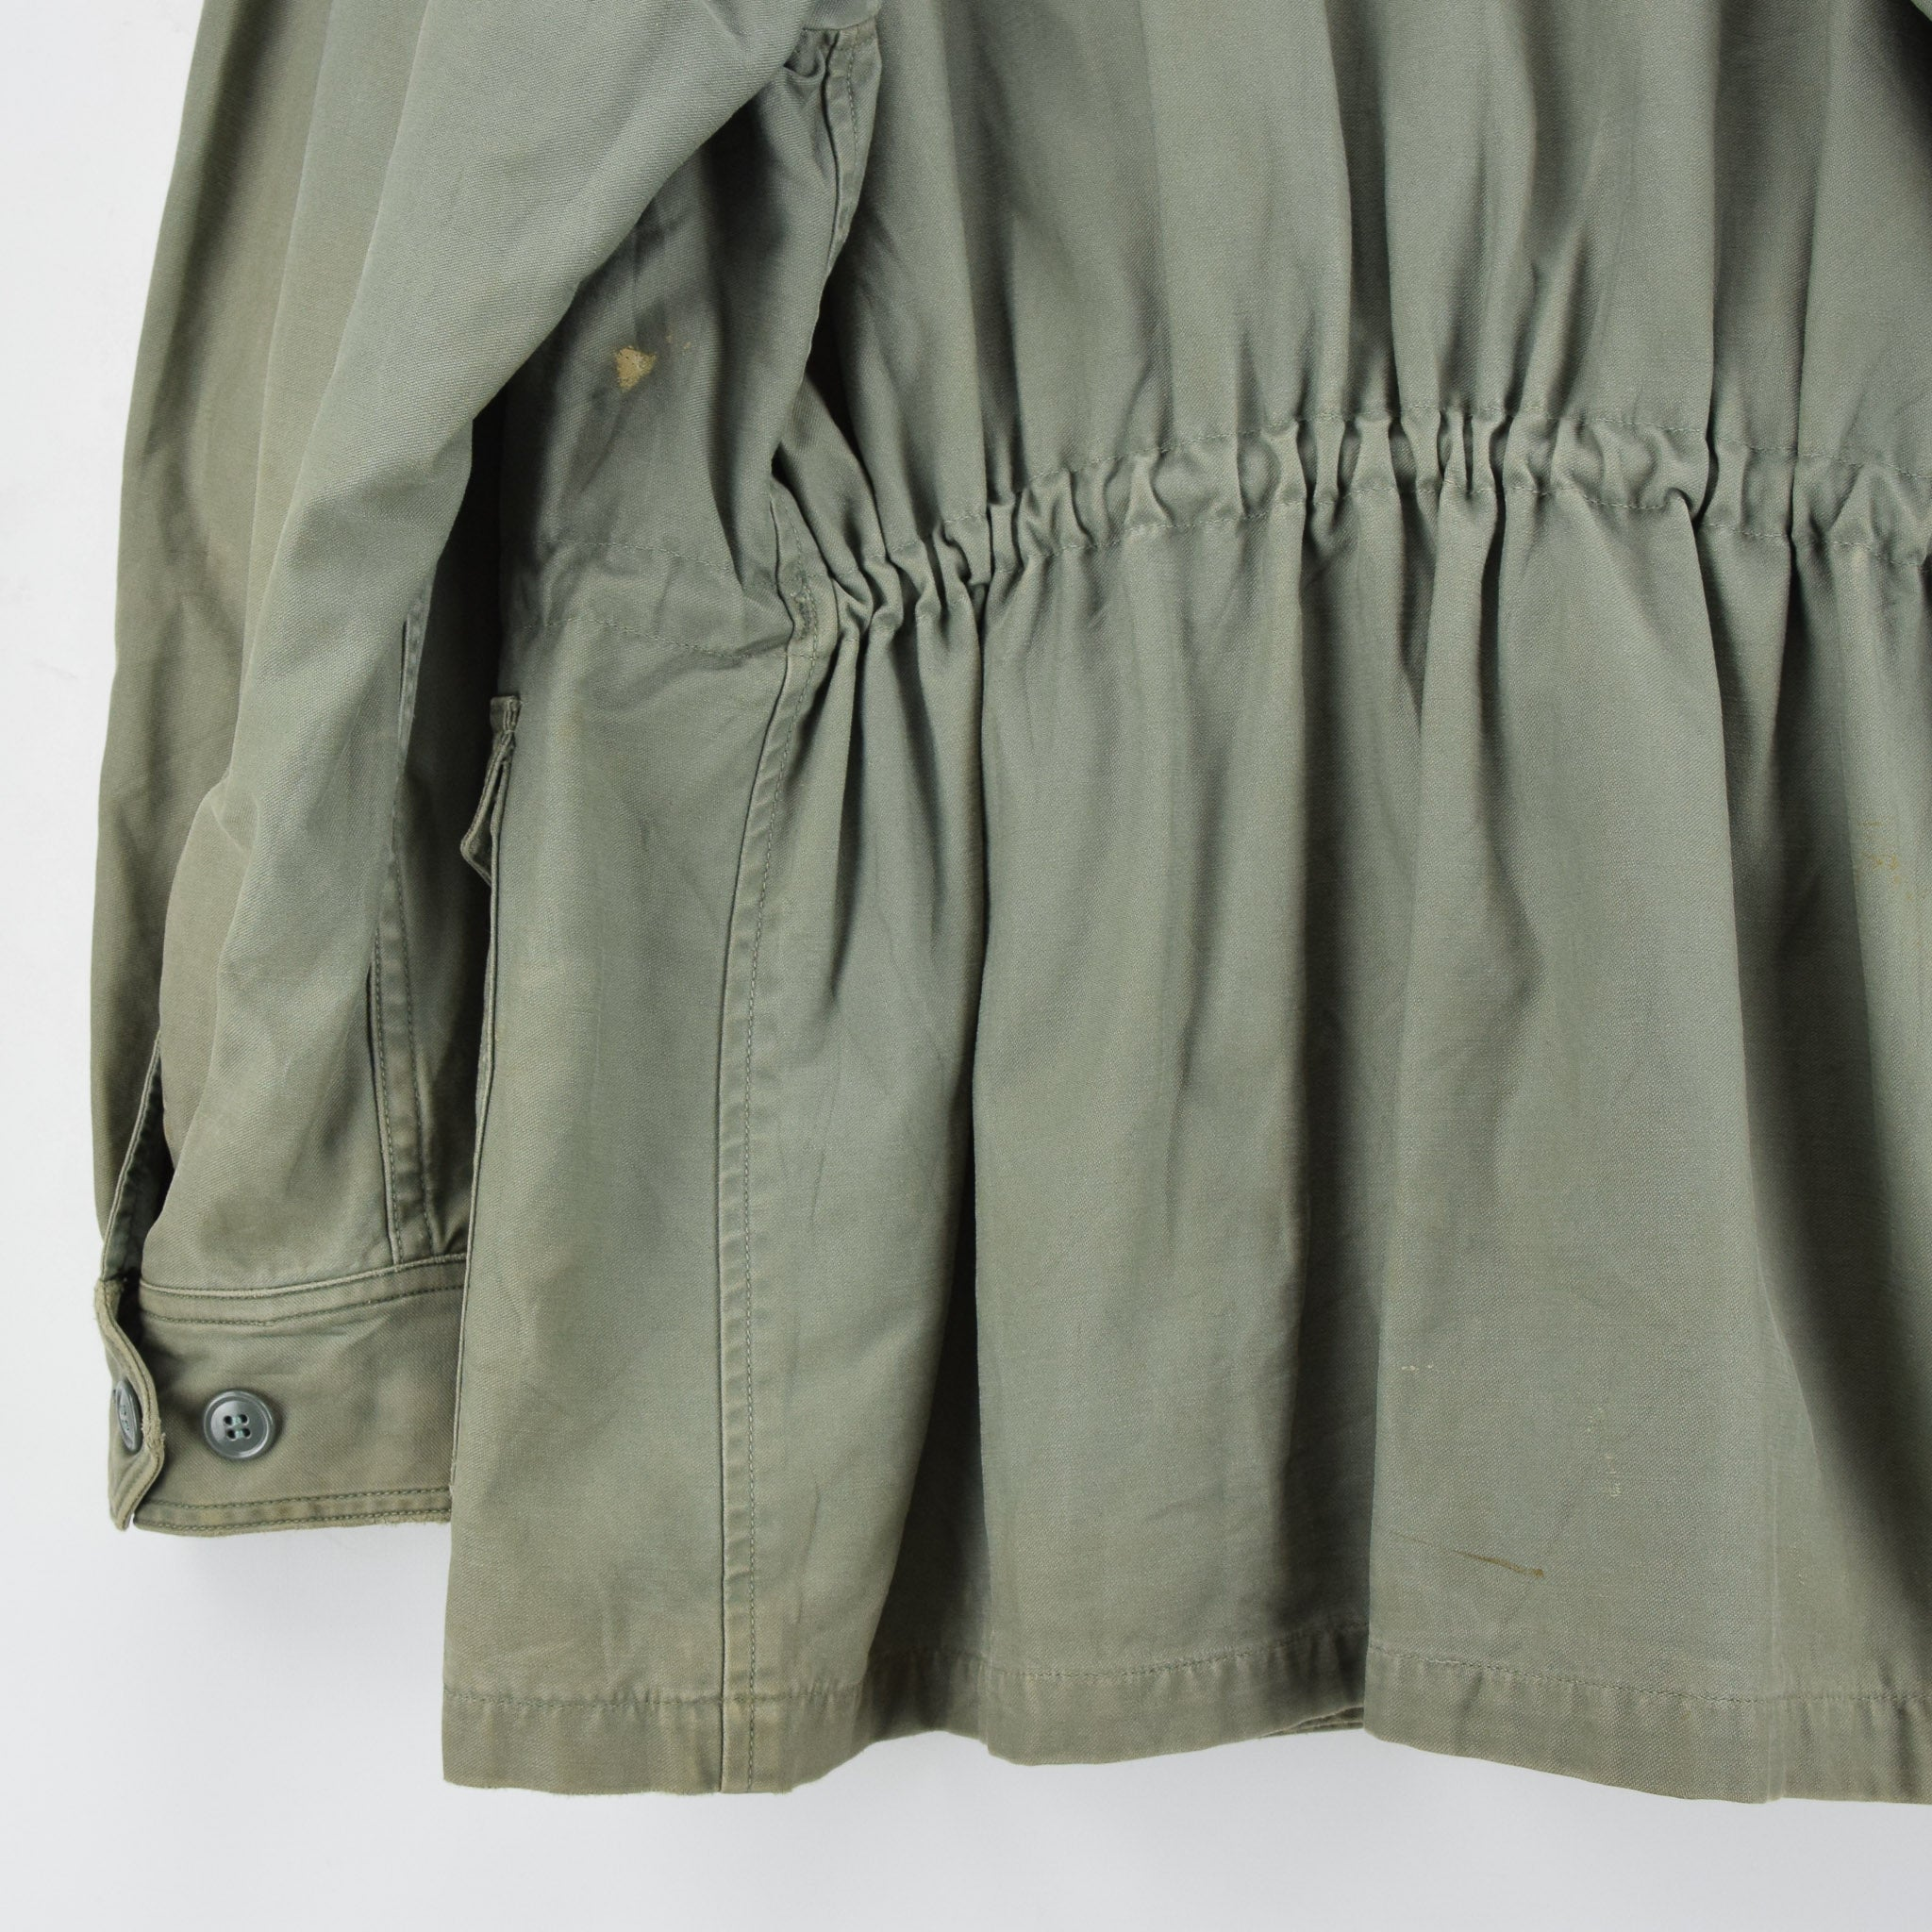 Vintage 60s Vietnam War US Air Force Field Jacket Olive Green USAF M back hem